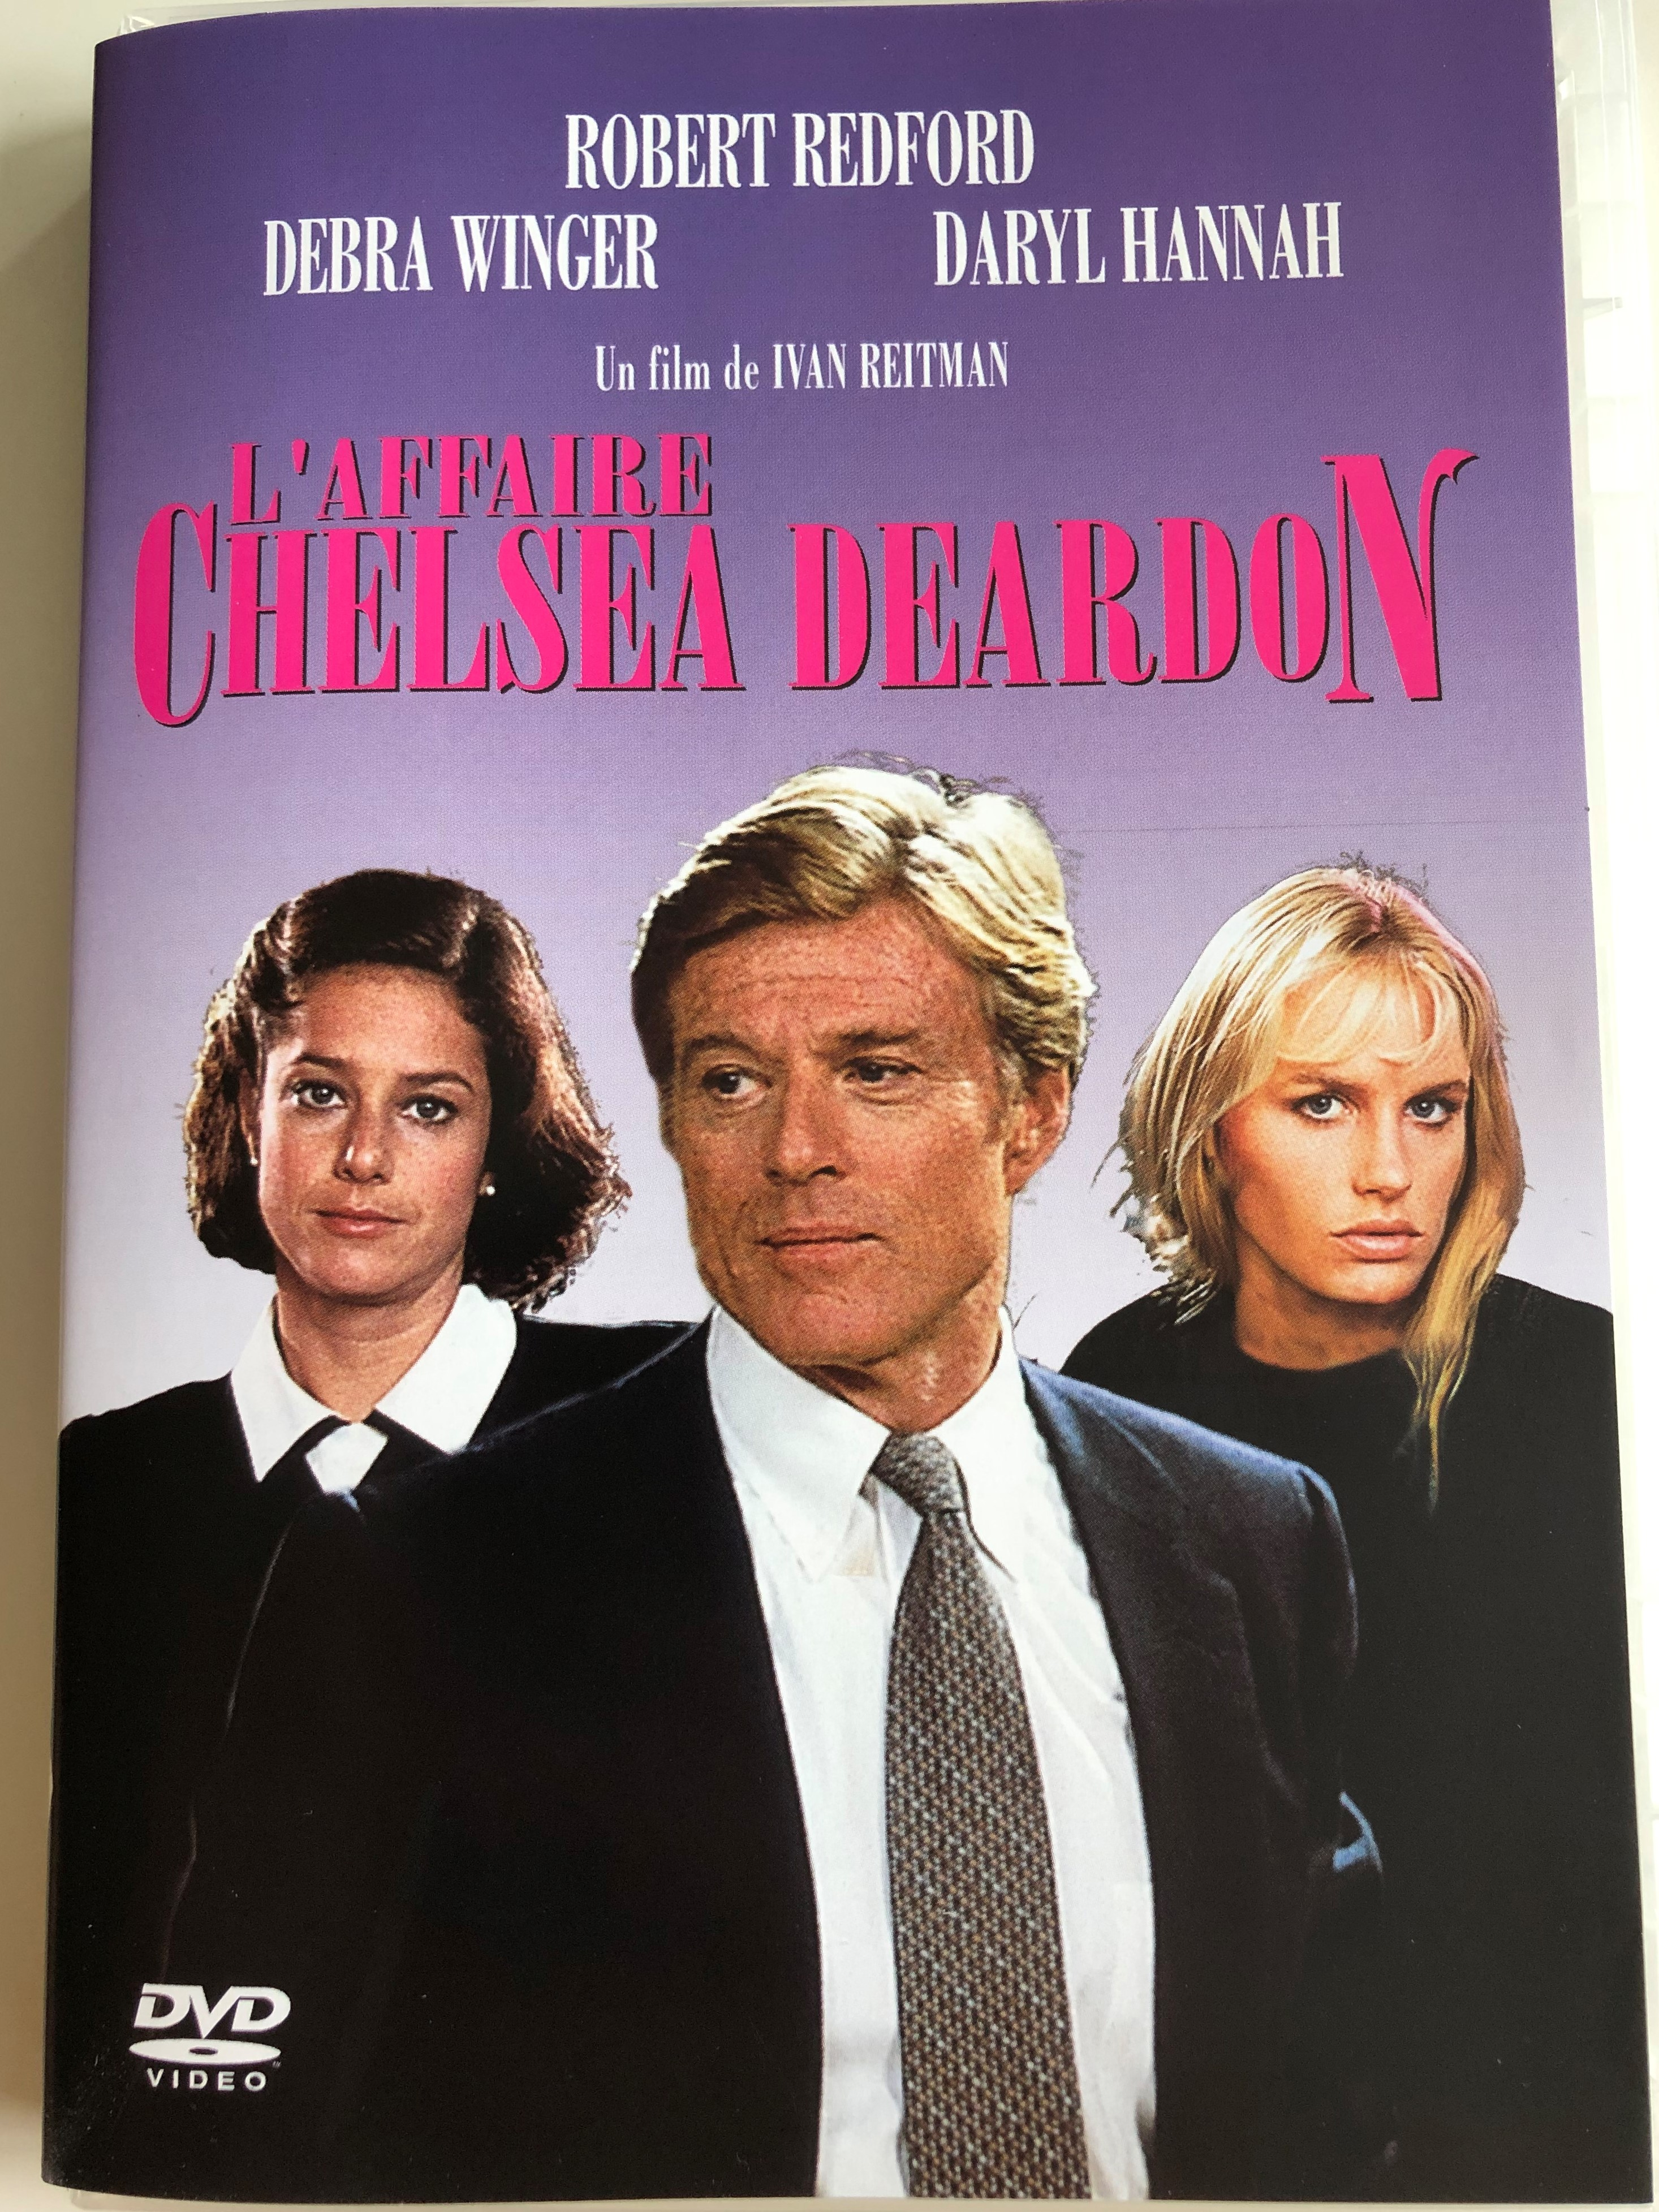 legal-eagles-dvd-1986-l-affaire-chelsea-deardon-directed-by-ivan-reitman-starring-robert-redford-debra-winger-daryl-hannah-1-.jpg